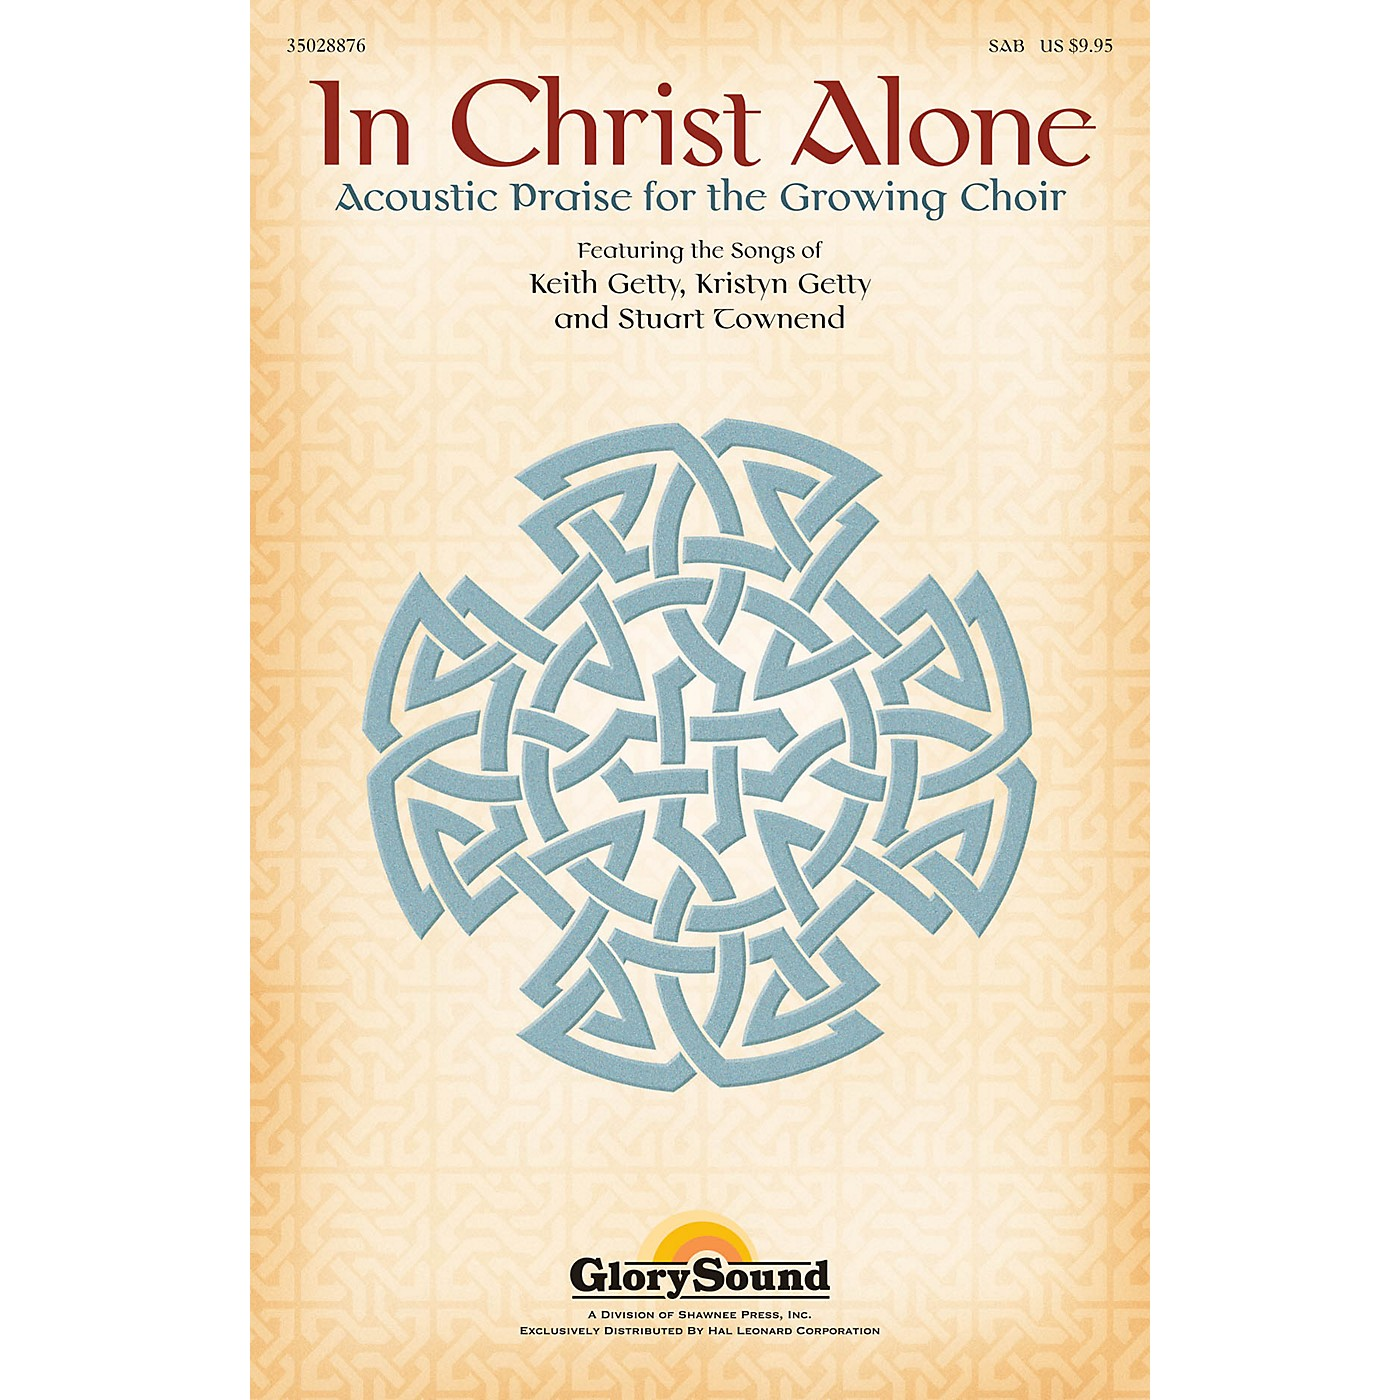 Shawnee Press In Christ Alone (Acoustic Praise for the Growing Choir)  Listening CD Listening CD by Keith Getty thumbnail